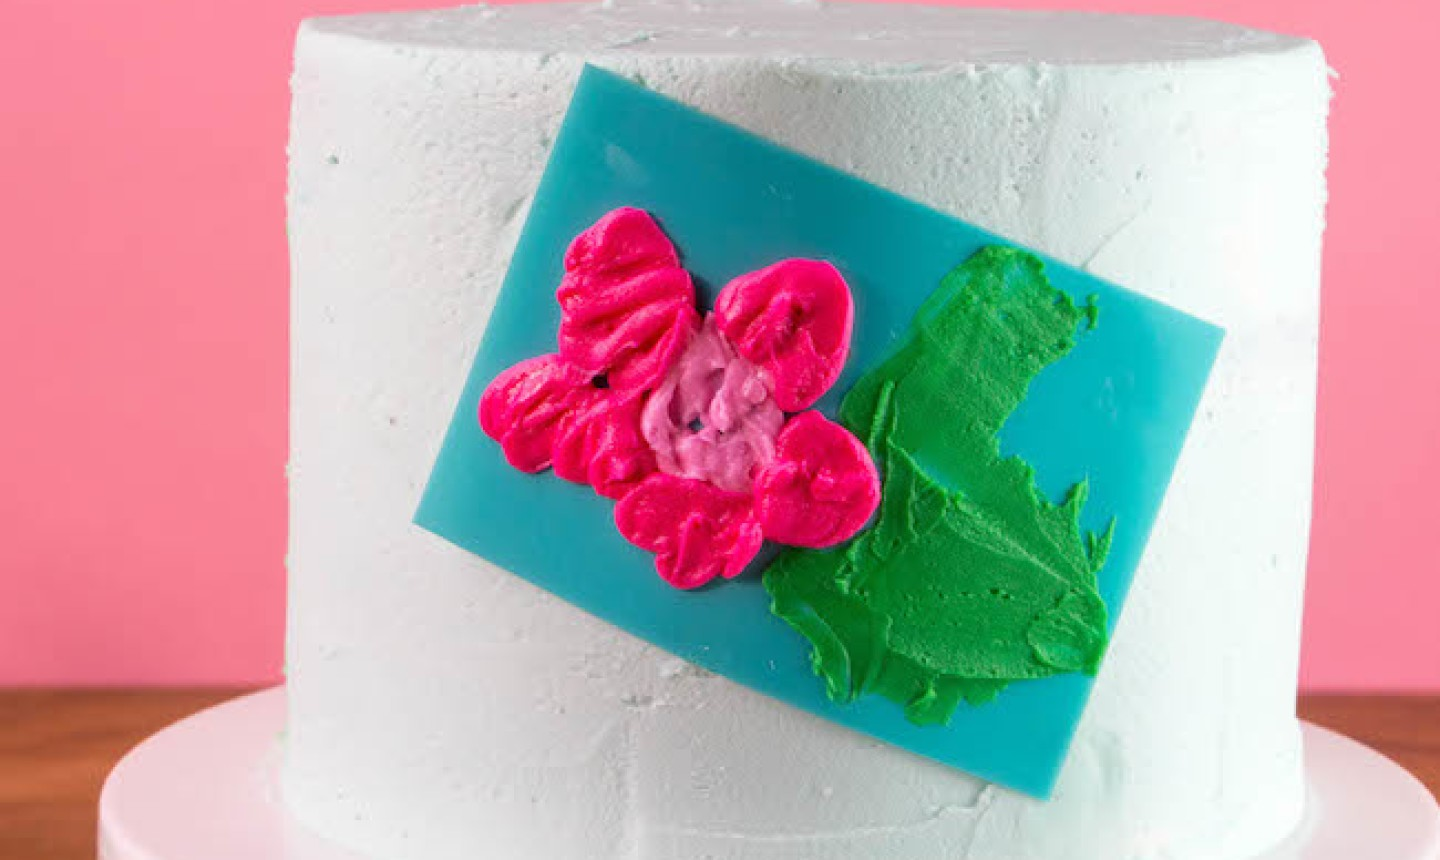 stenciling pink flower onto cake